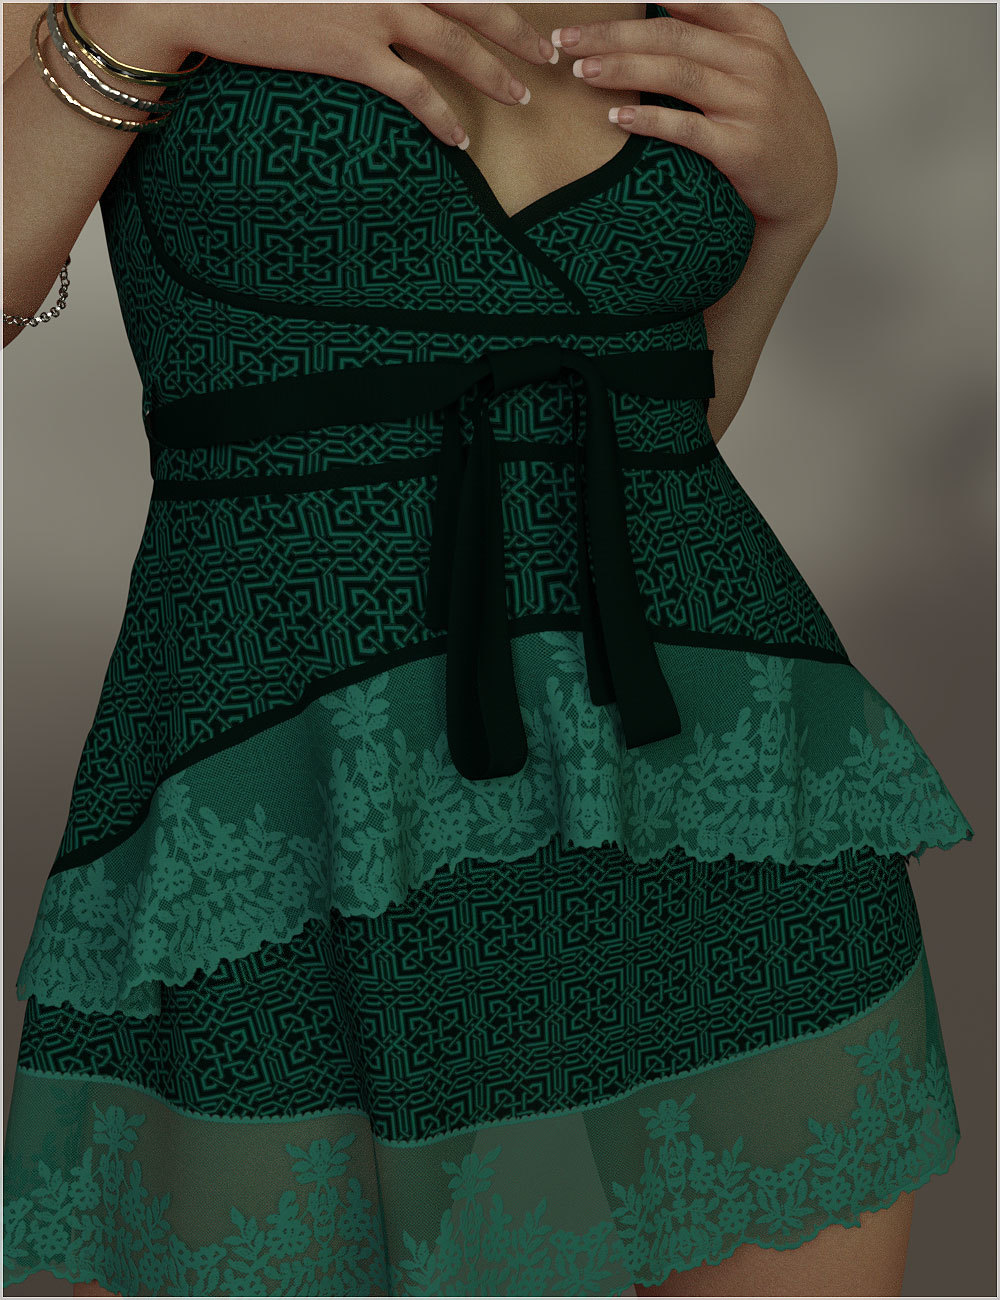 Stylish for dForce Leah Candy Dress Outfit by Belladzines